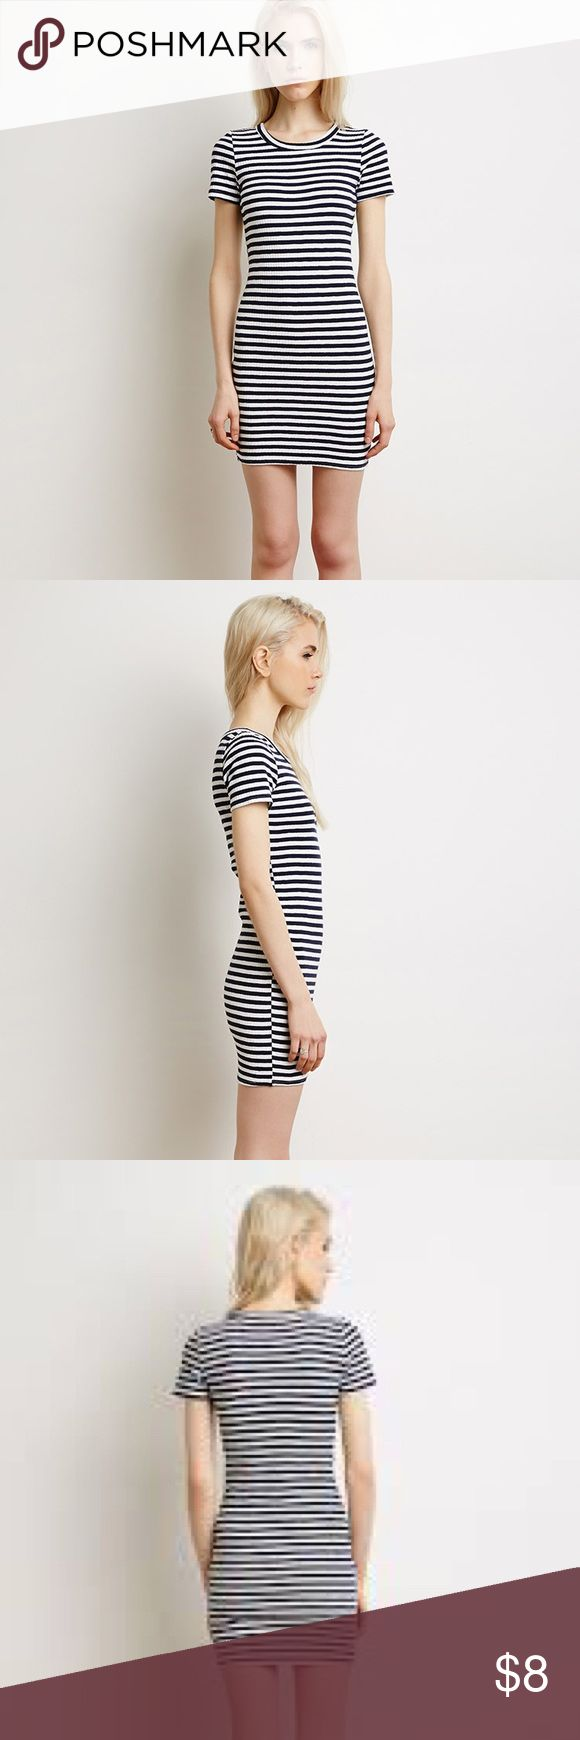 Forever 21 Navy & White Striped Bodycon Dress Very stretchy and flattering bodycon dress from Forever 21. It has navy blue and white horizontal stripes. It is in a size Medium. Ive only worn it once, and it is in great condition: Forever 21 Dresses Midi